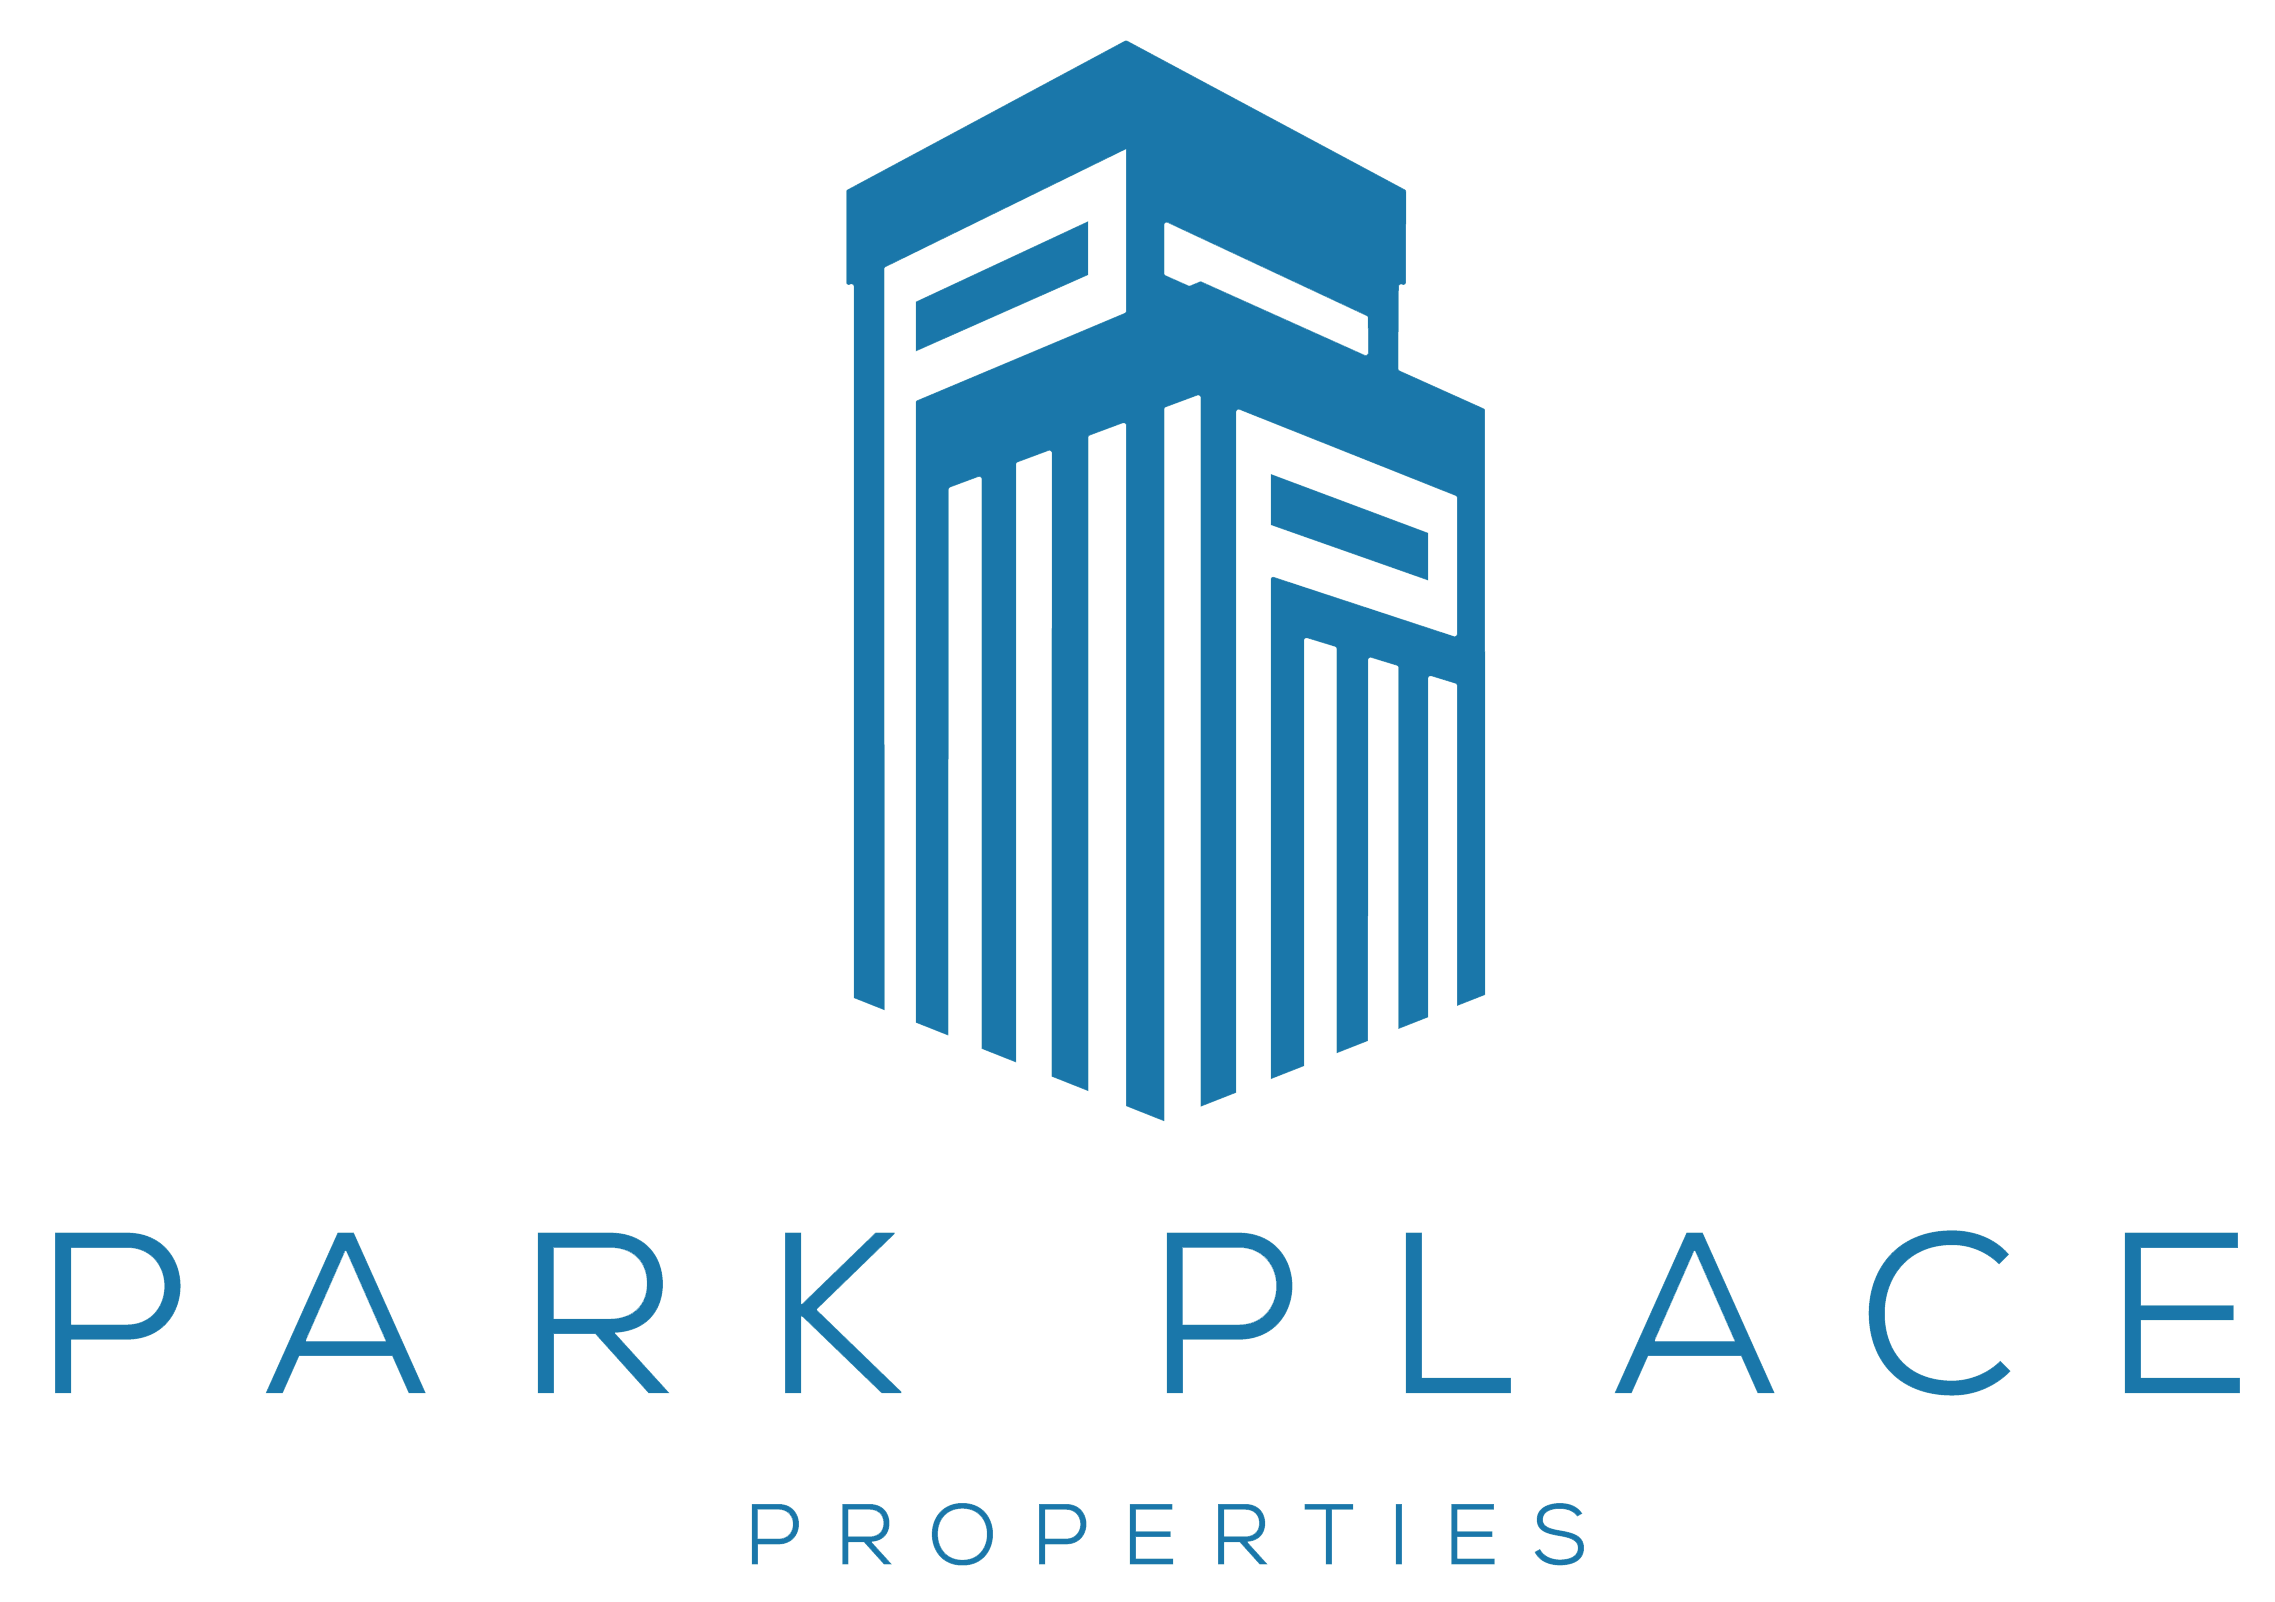 Park Place Properties Miami Property Management: Miami Airbnb Management Provides Comprehensive Housing Services For Property Owners in Miami, FL 19